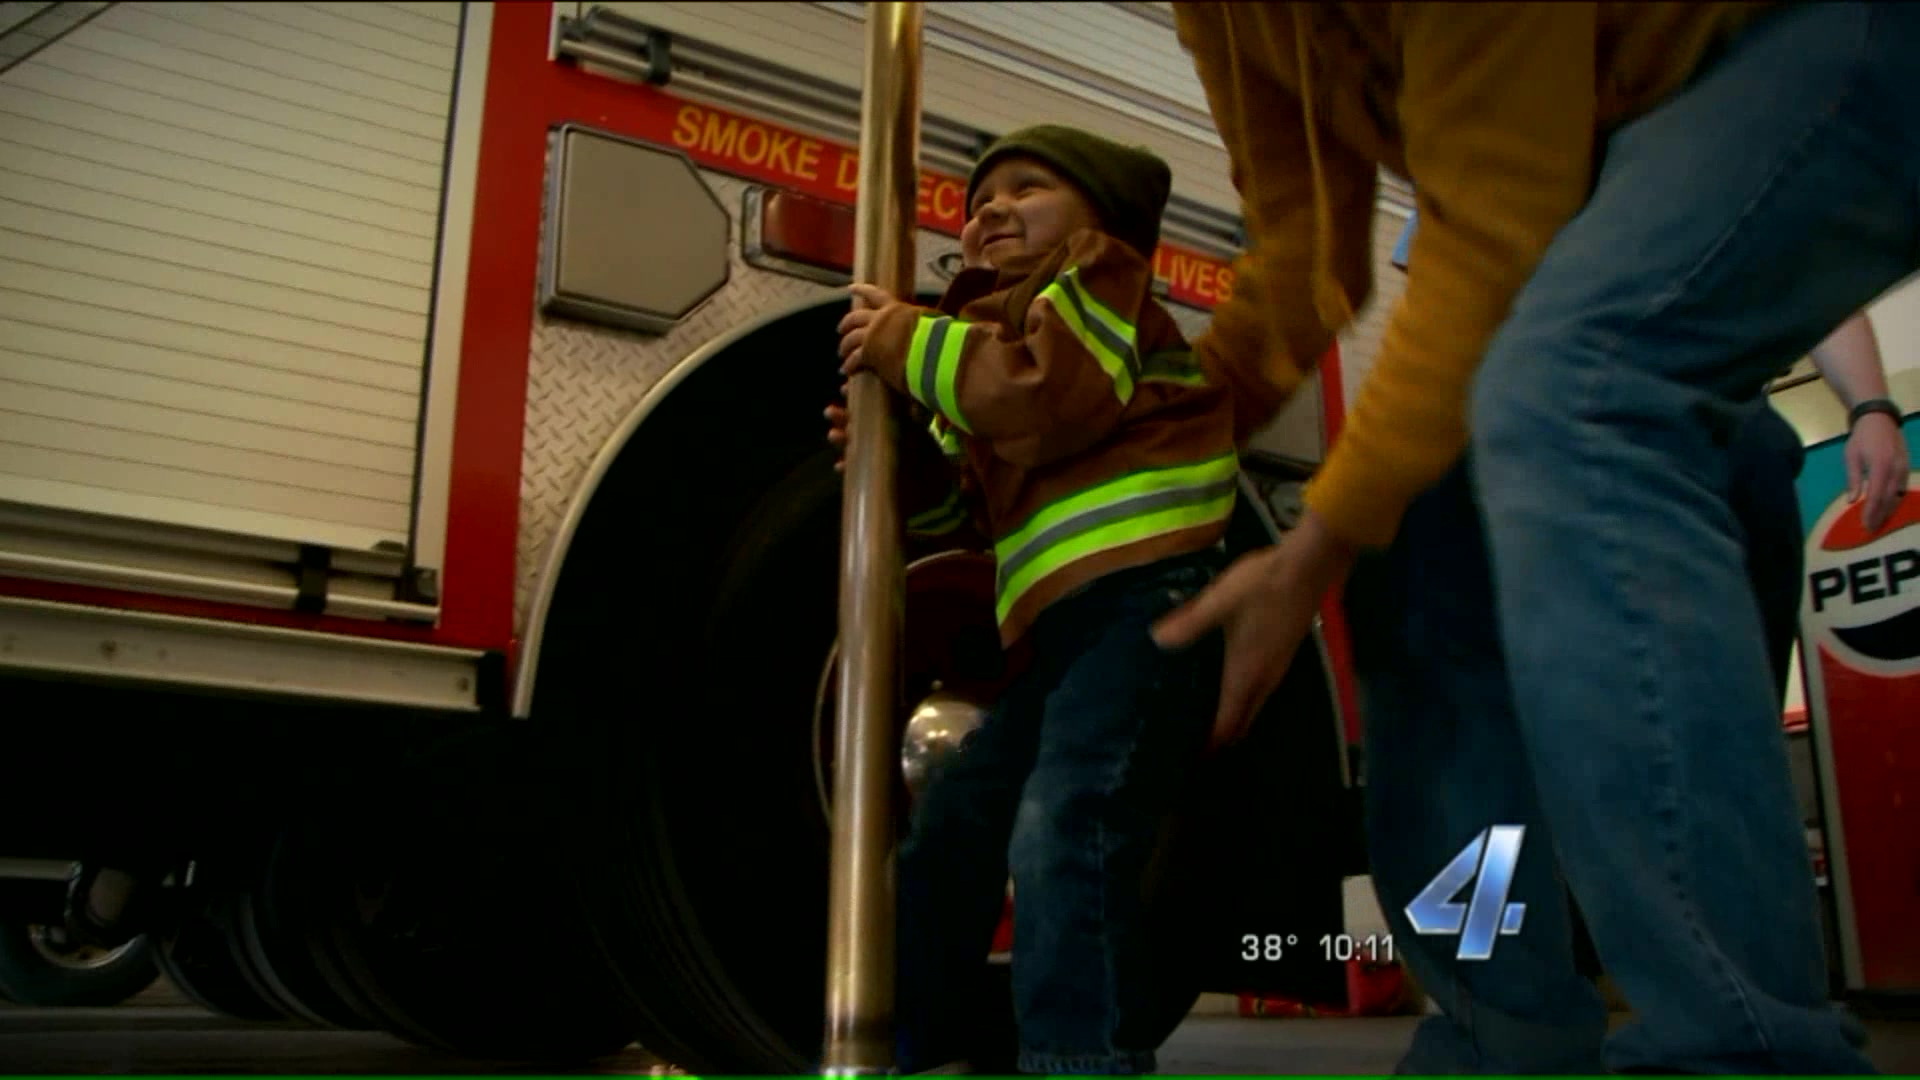 2-Year-Old Boy Battling Cancer Becomes Firefighter for a Day